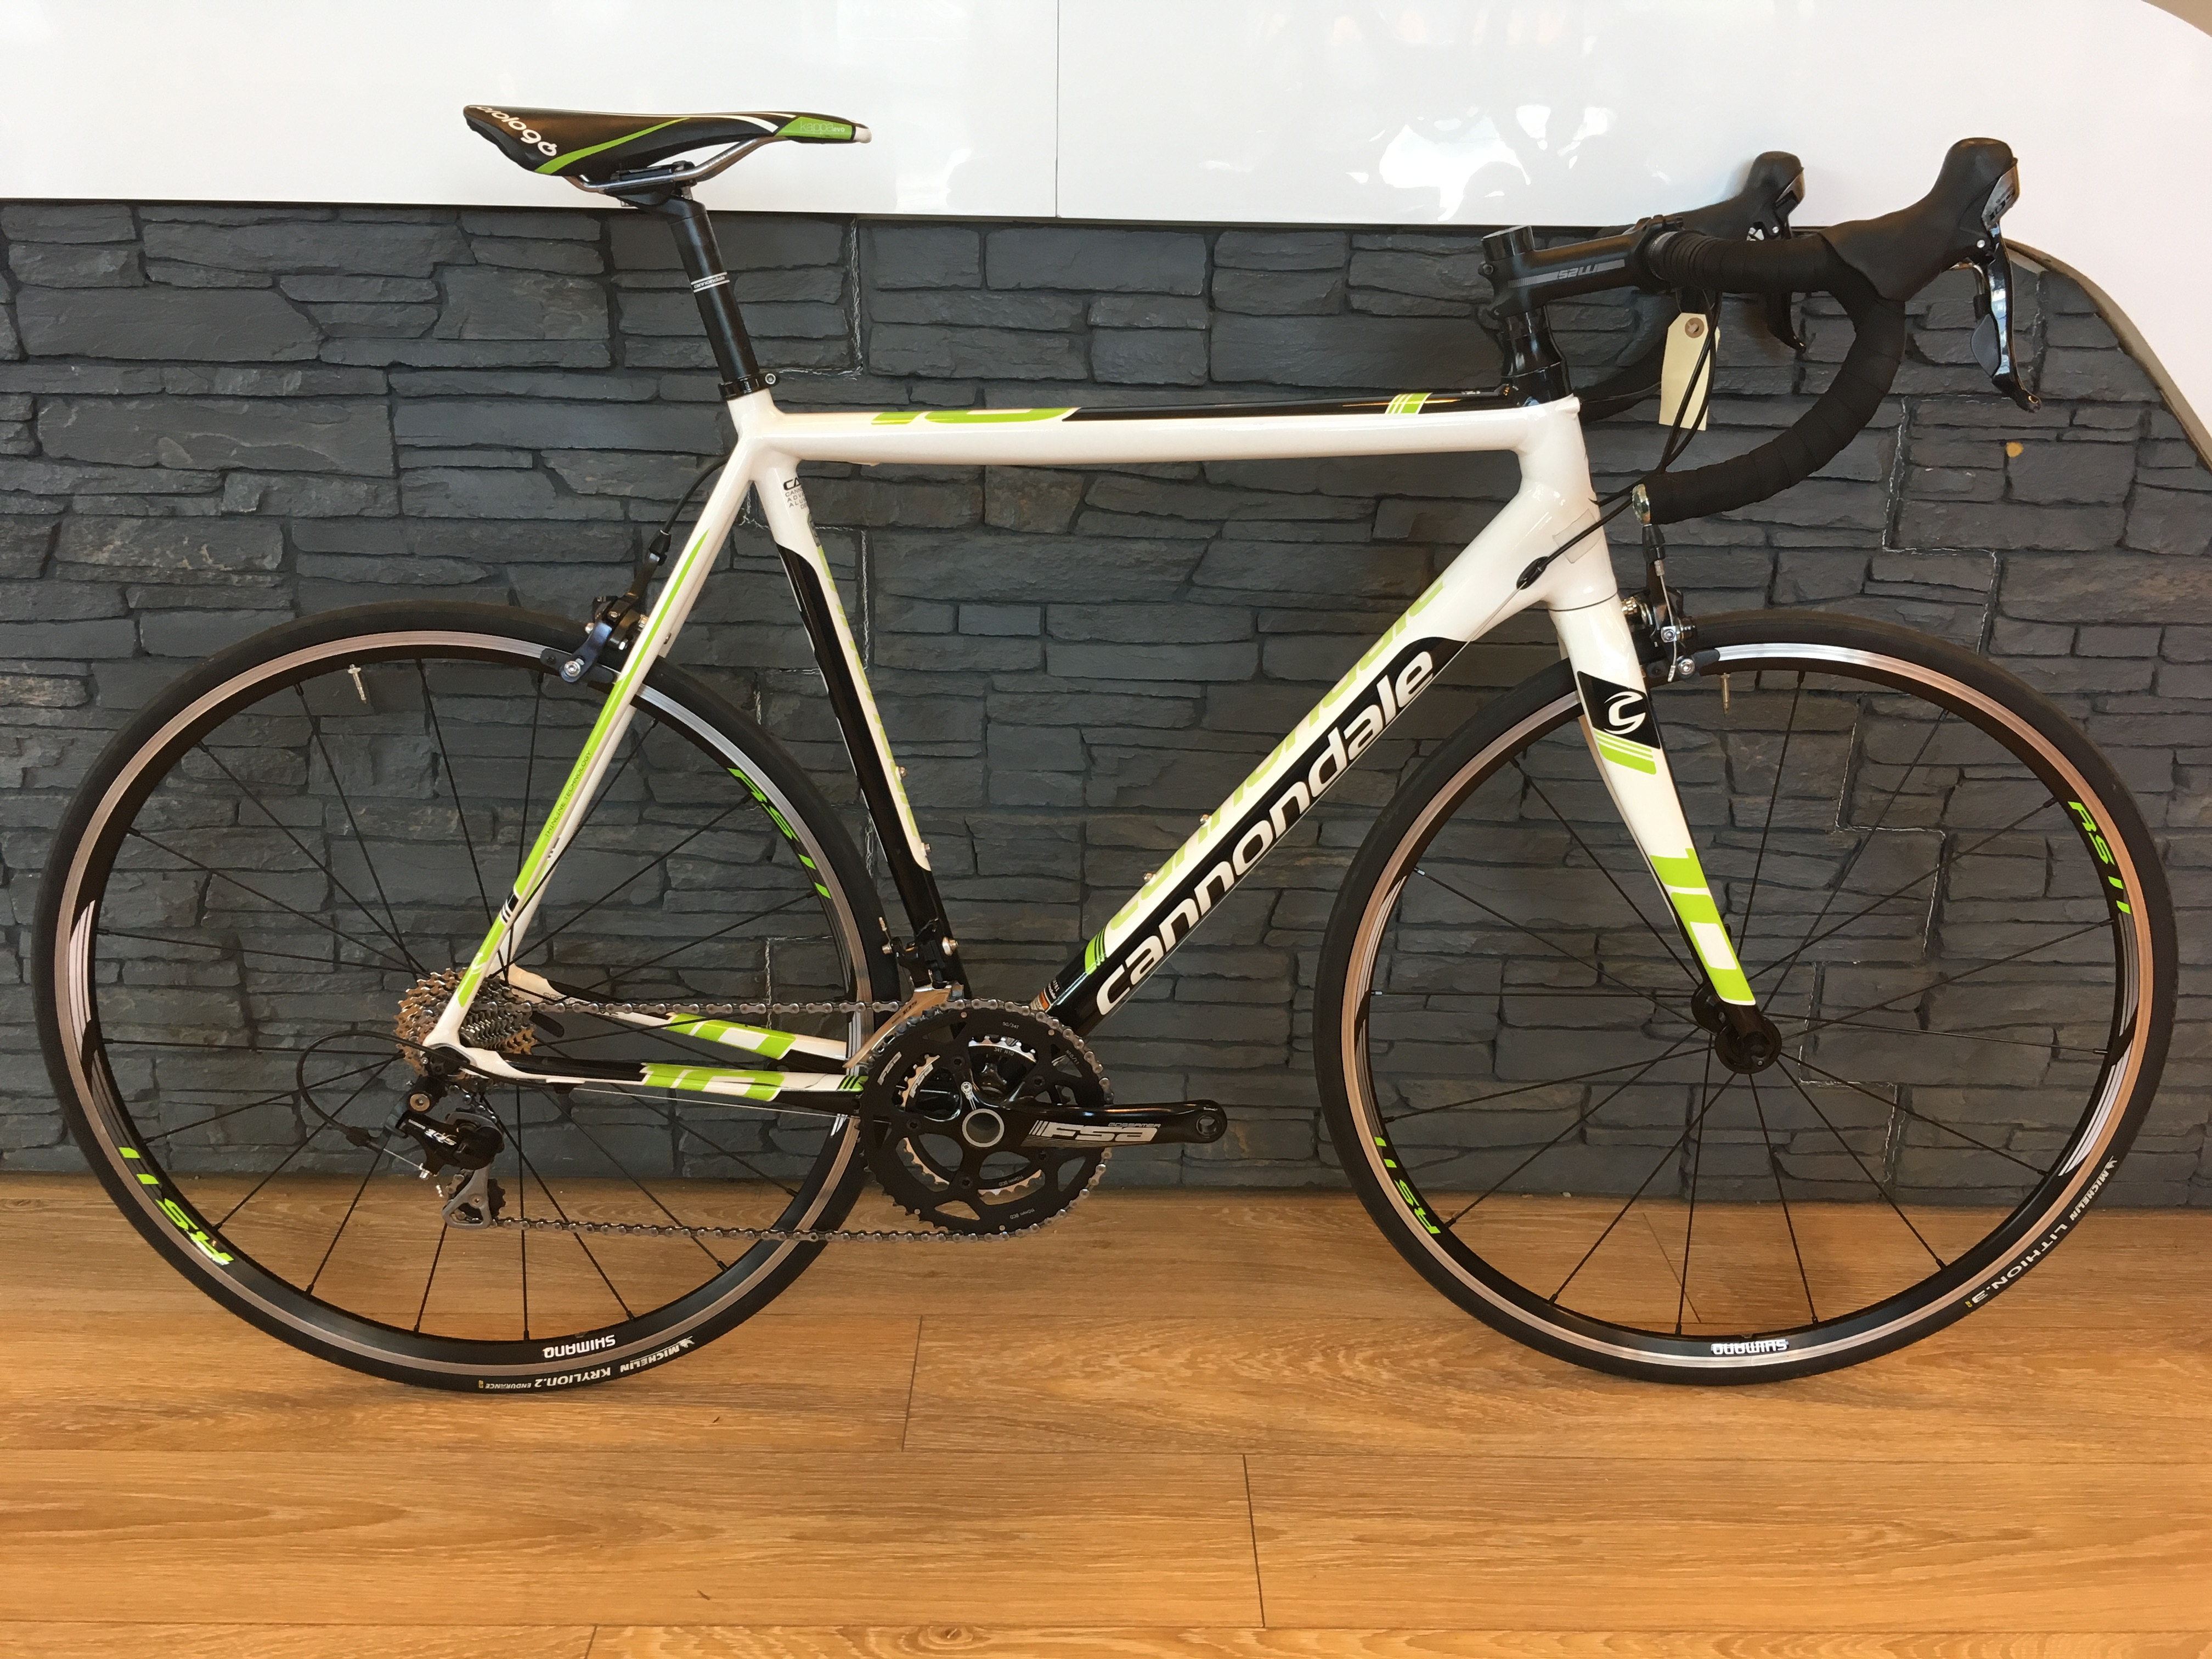 Cannondale CAAD10 105 T:58 2014 Image